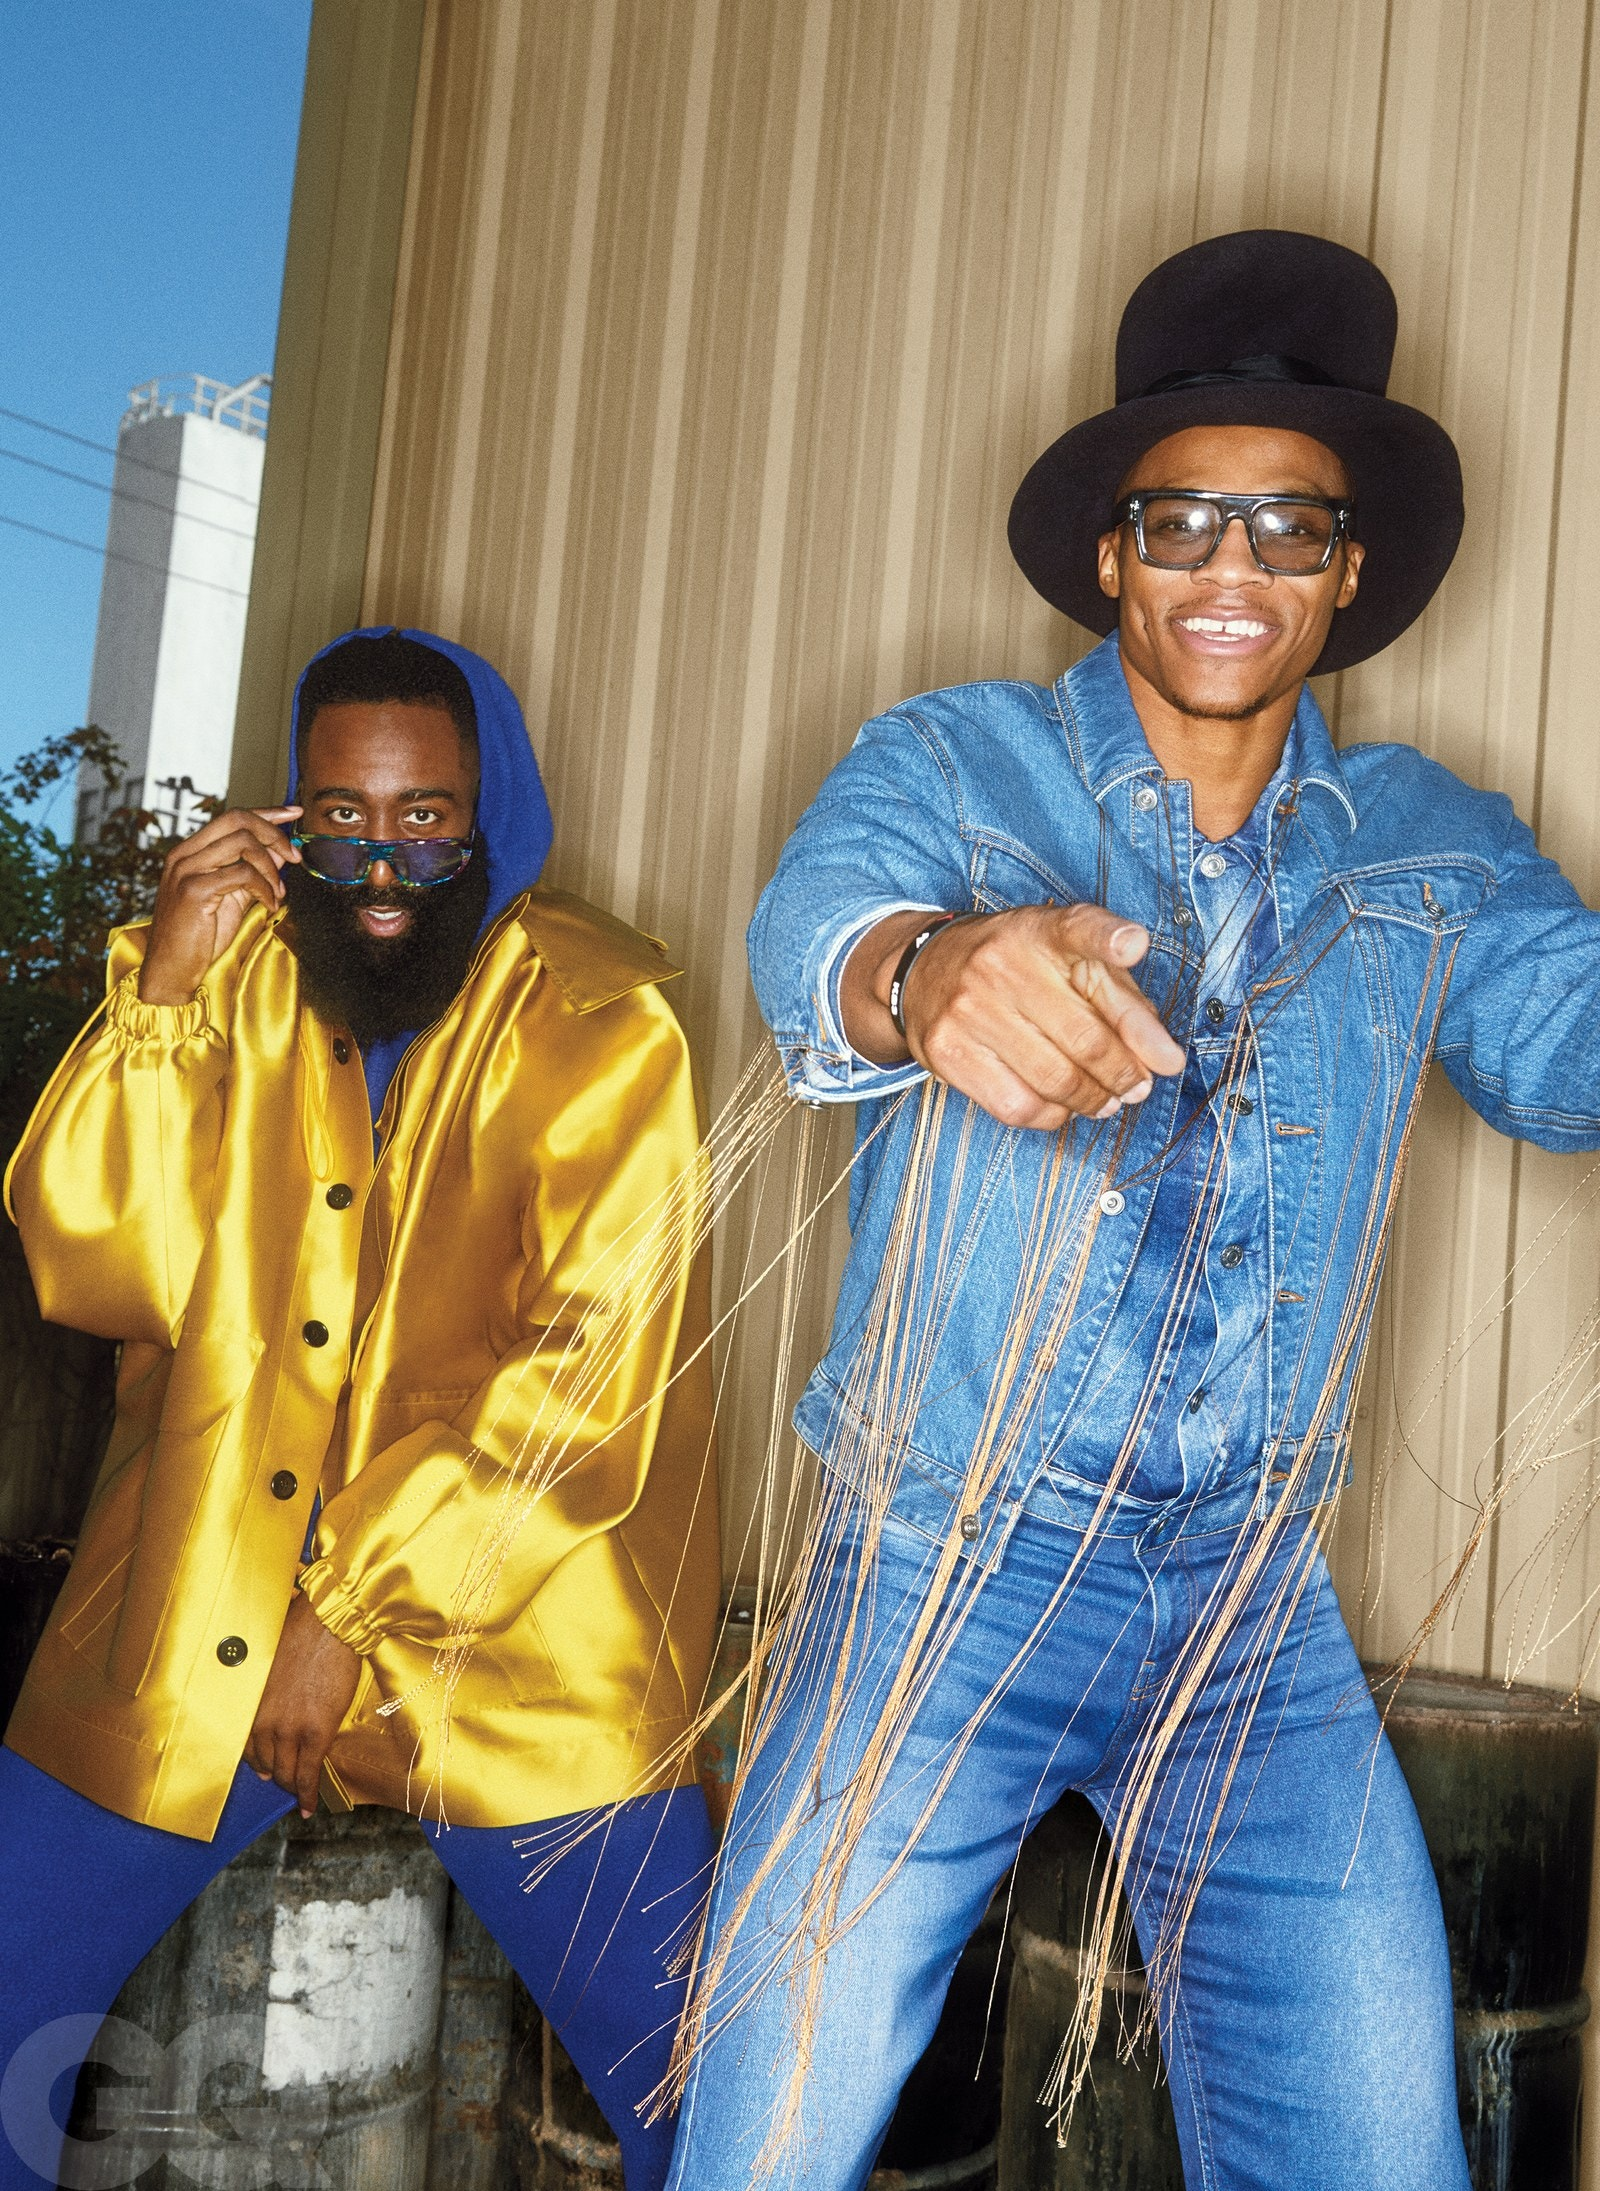 Your First Look At GQ's Newest Cover Stars: James Harden and Russell Westbrook